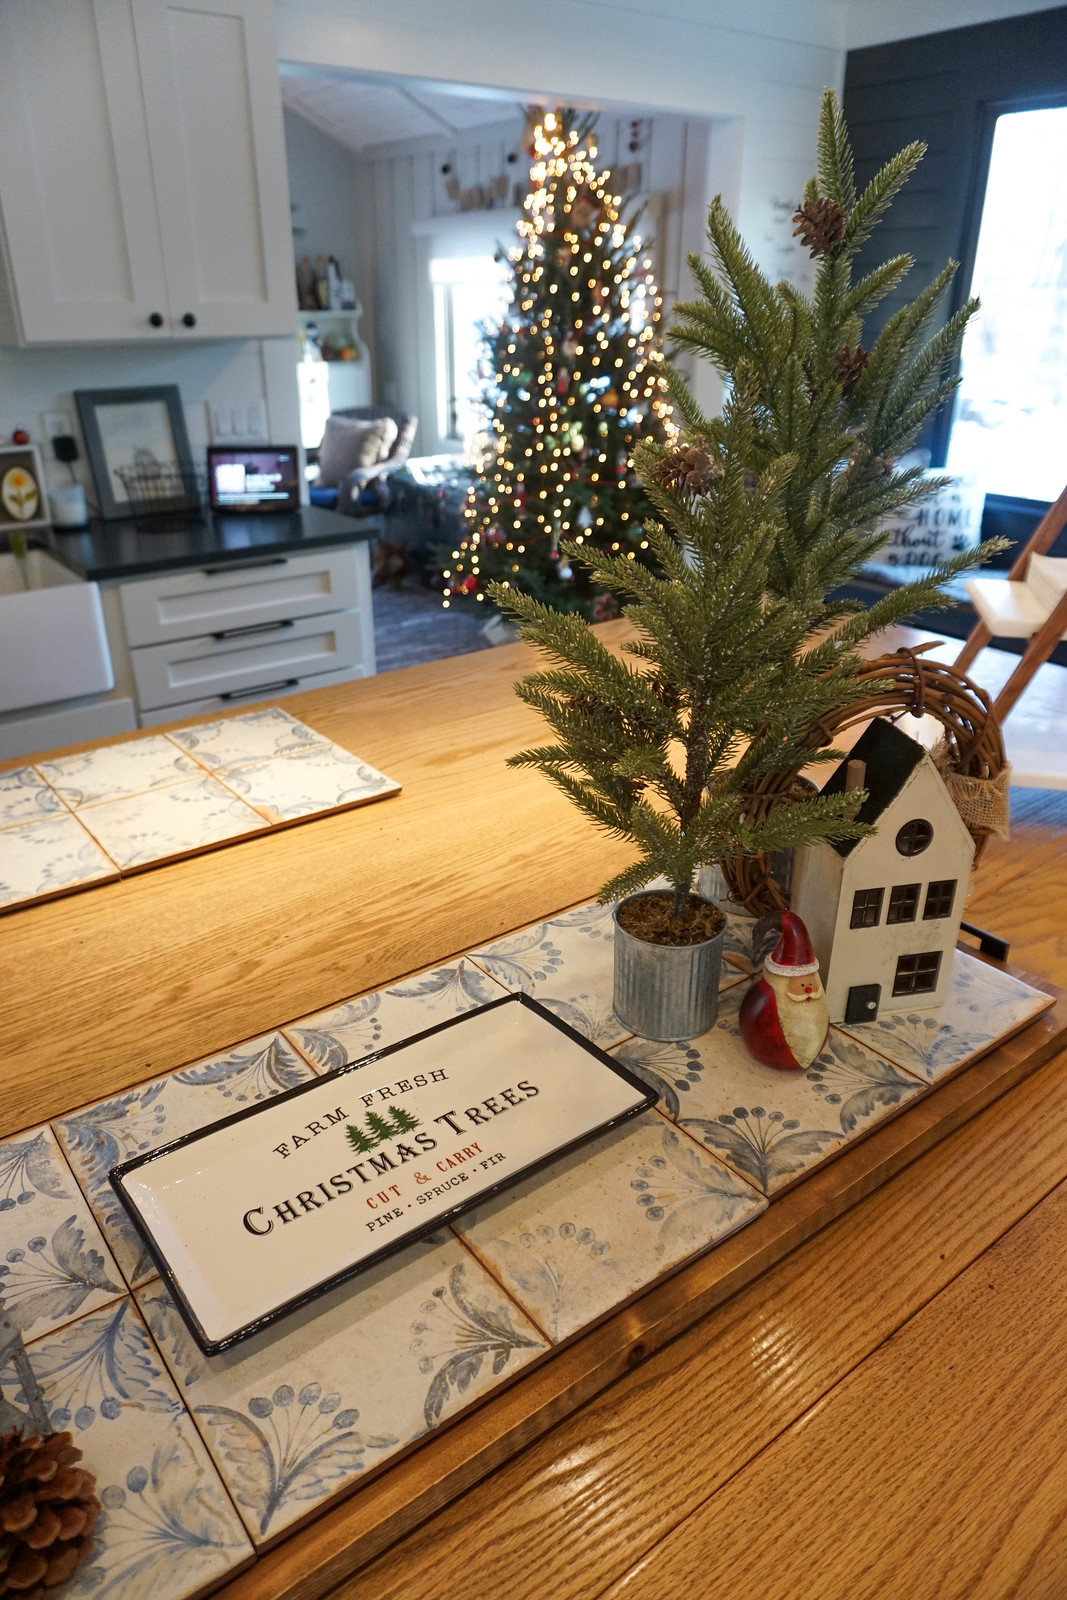 Tabletop Christmas Decorations Modern Farmhouse Kitchen Island Decor Ideas